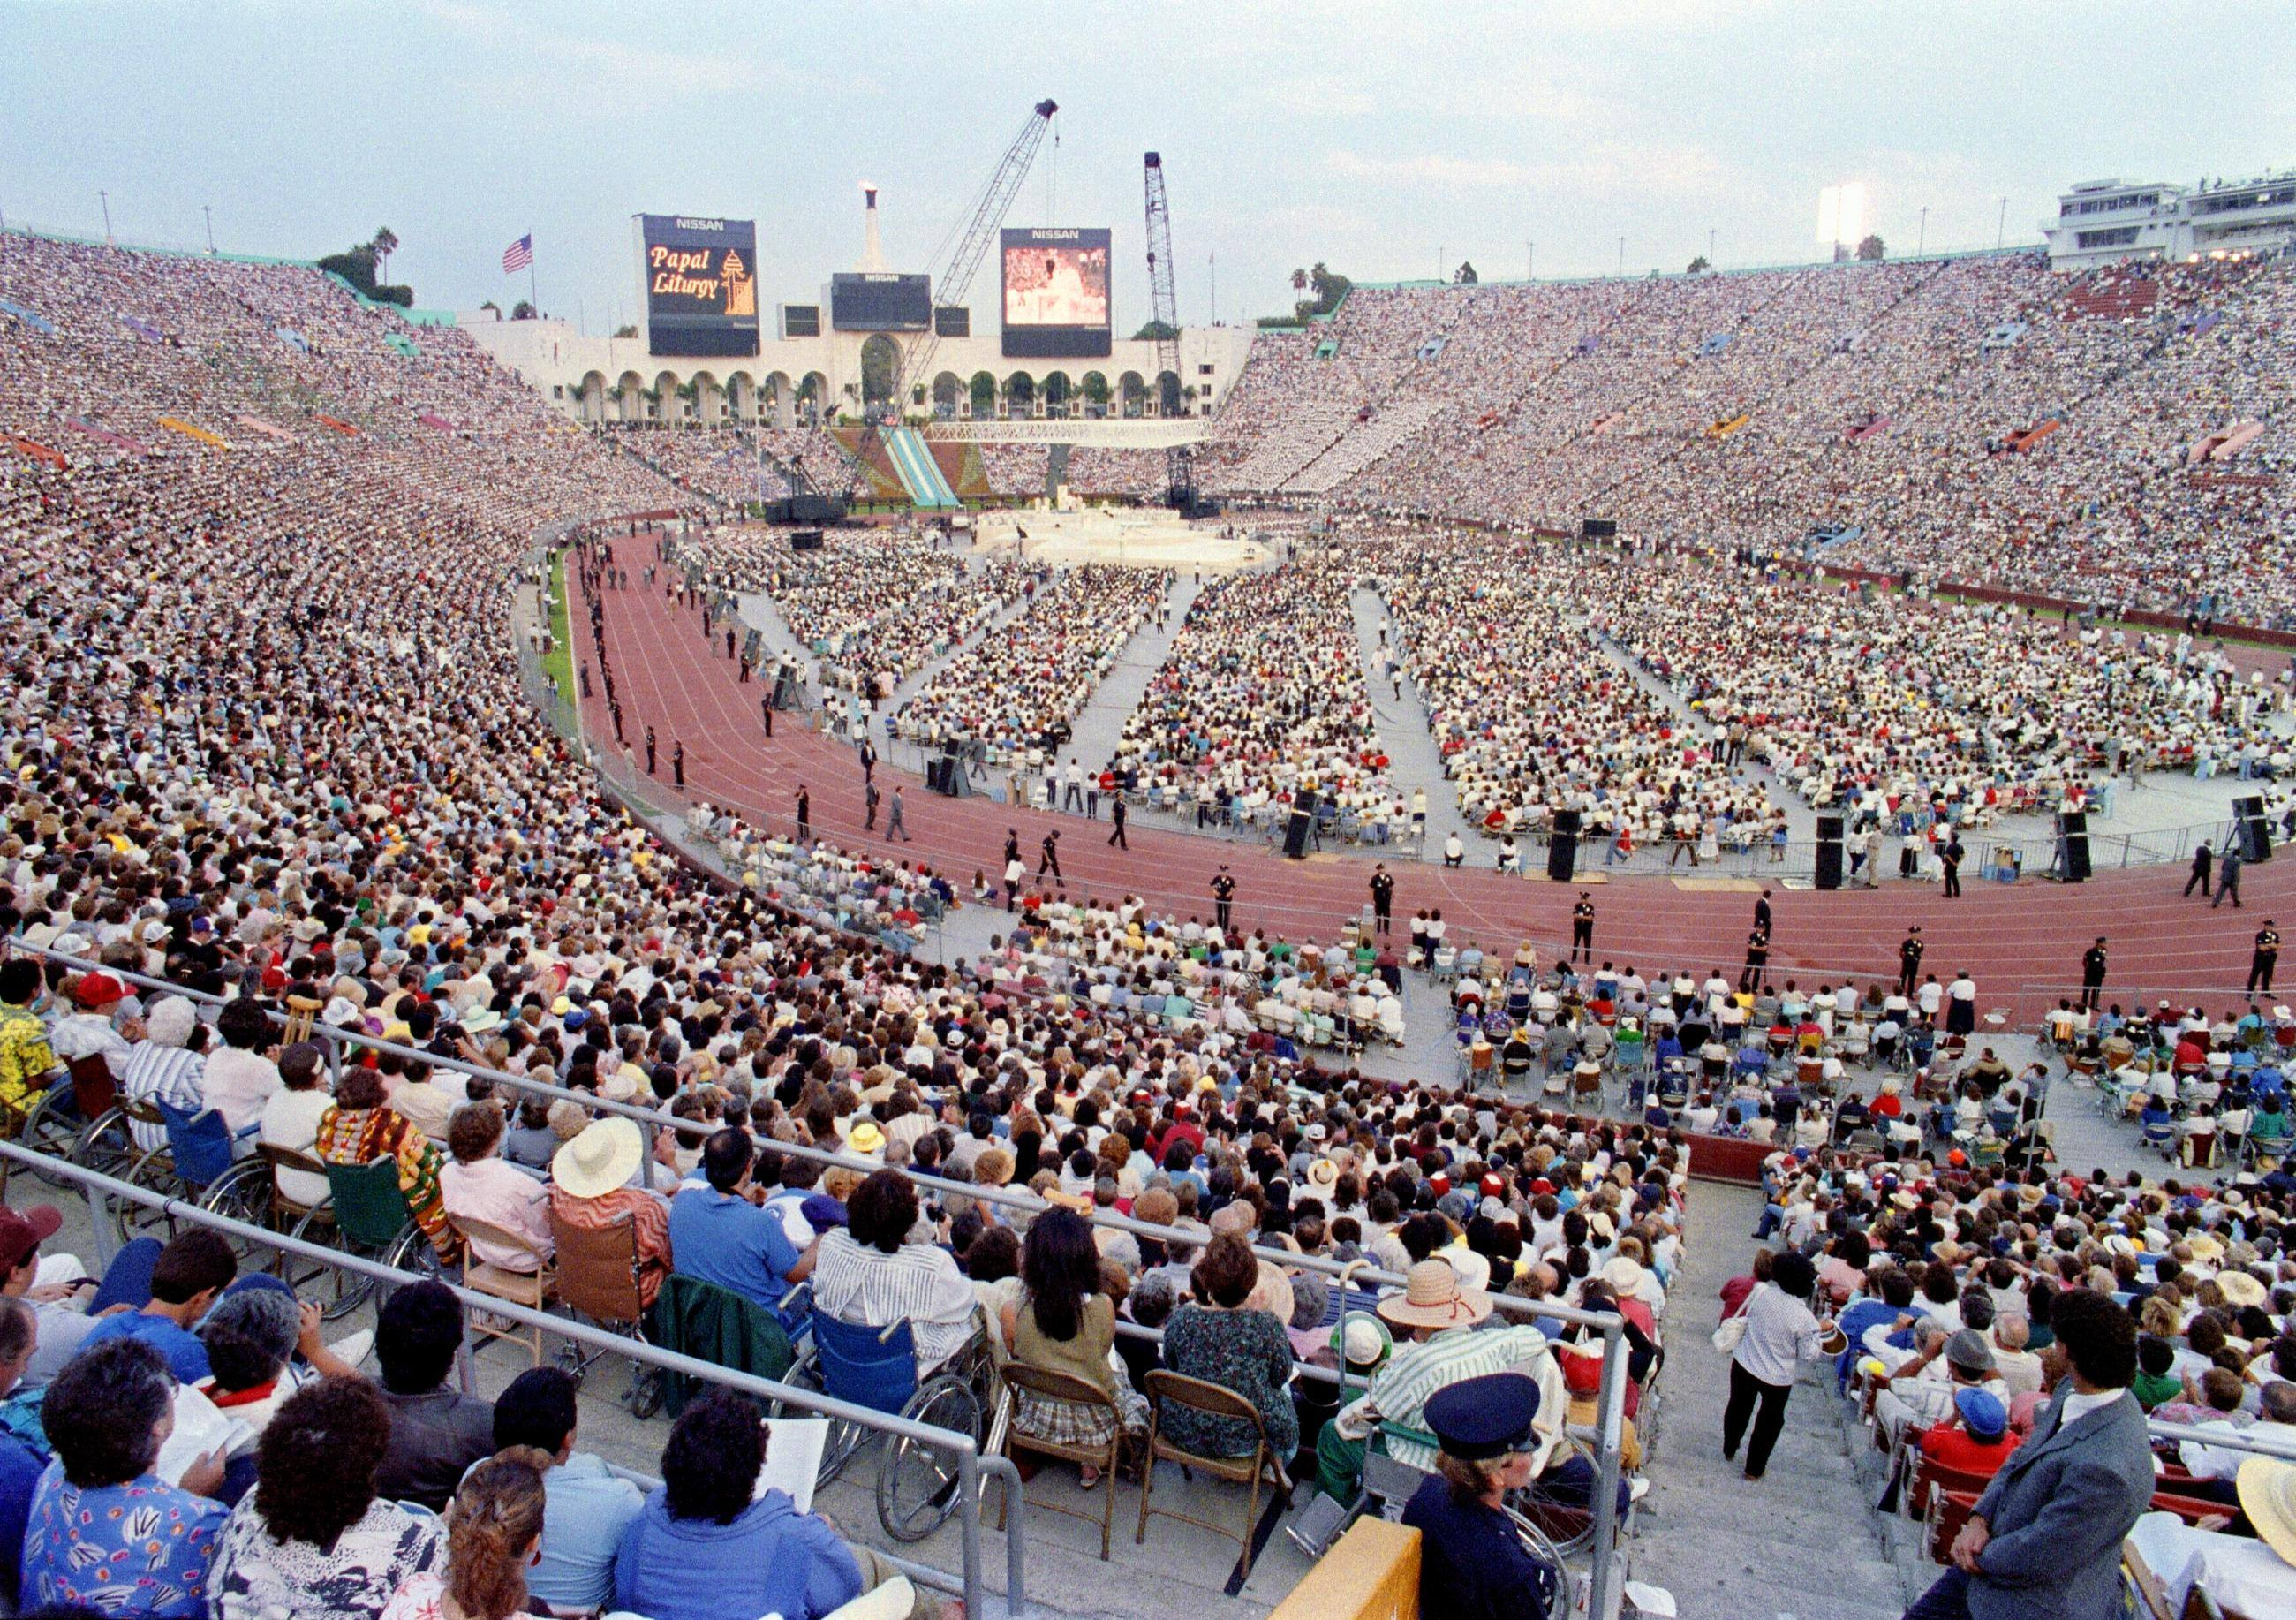 Pope John Paul II celebrates Mass at Los Angeles Memorial Coliseum in 1987